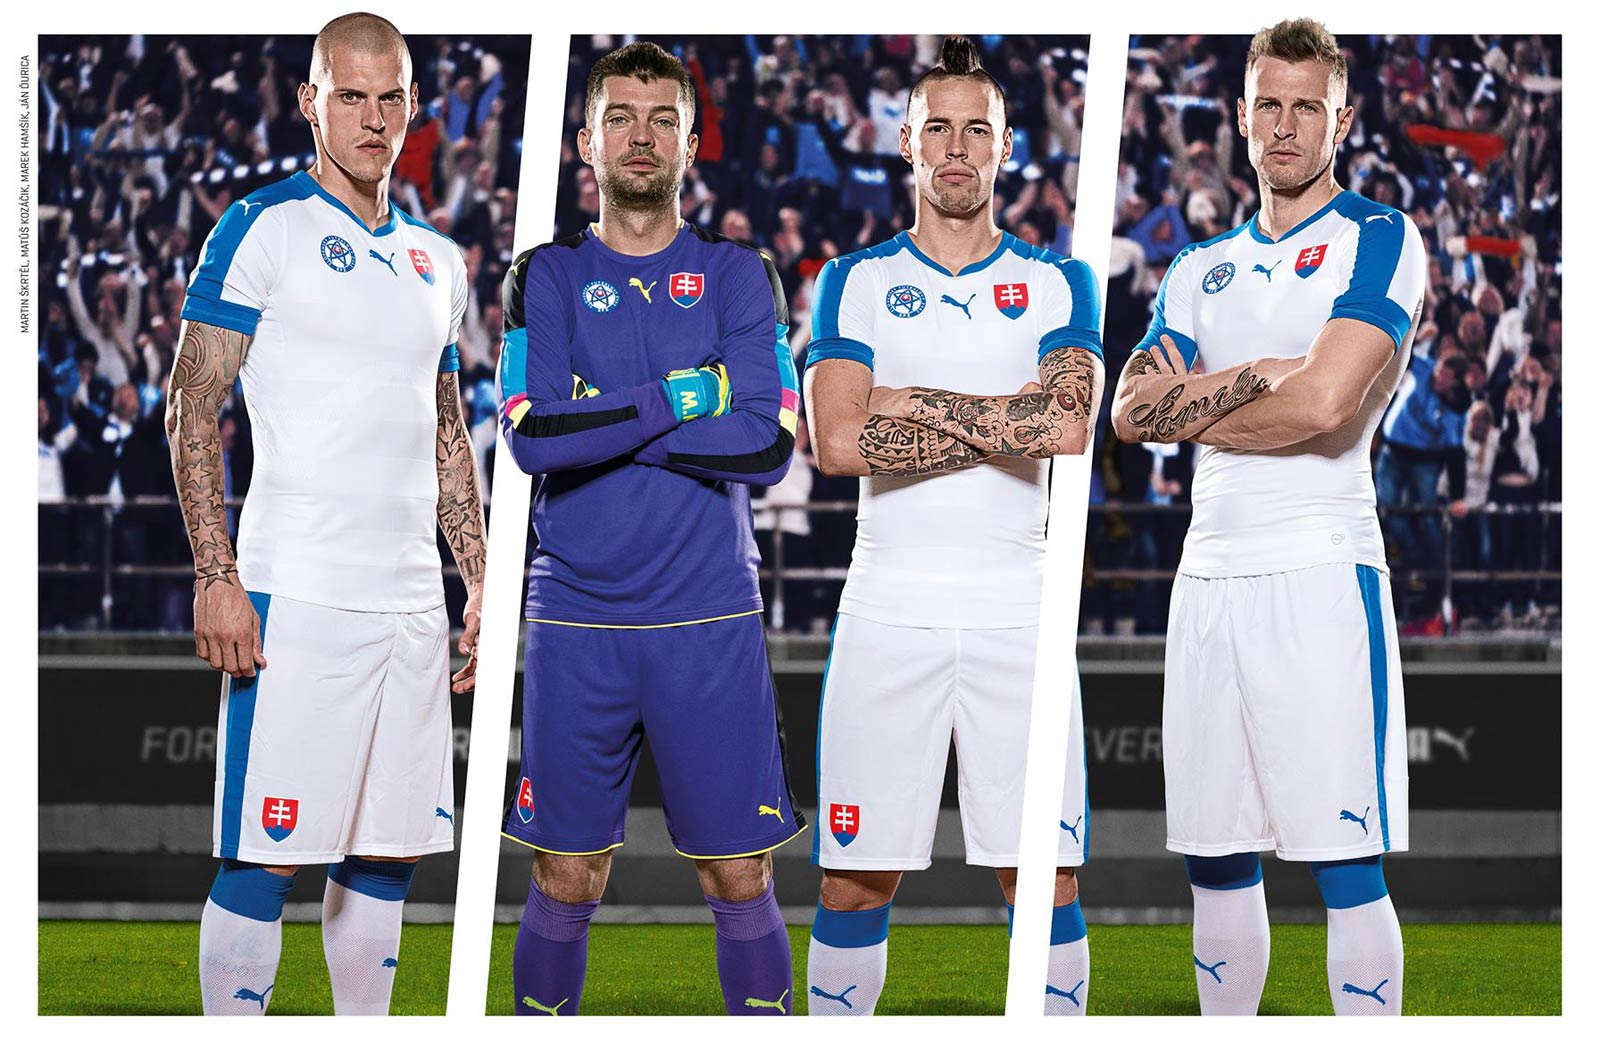 d16ae8d7779 Discount Slovakia Euro 2016 Home Kit Released